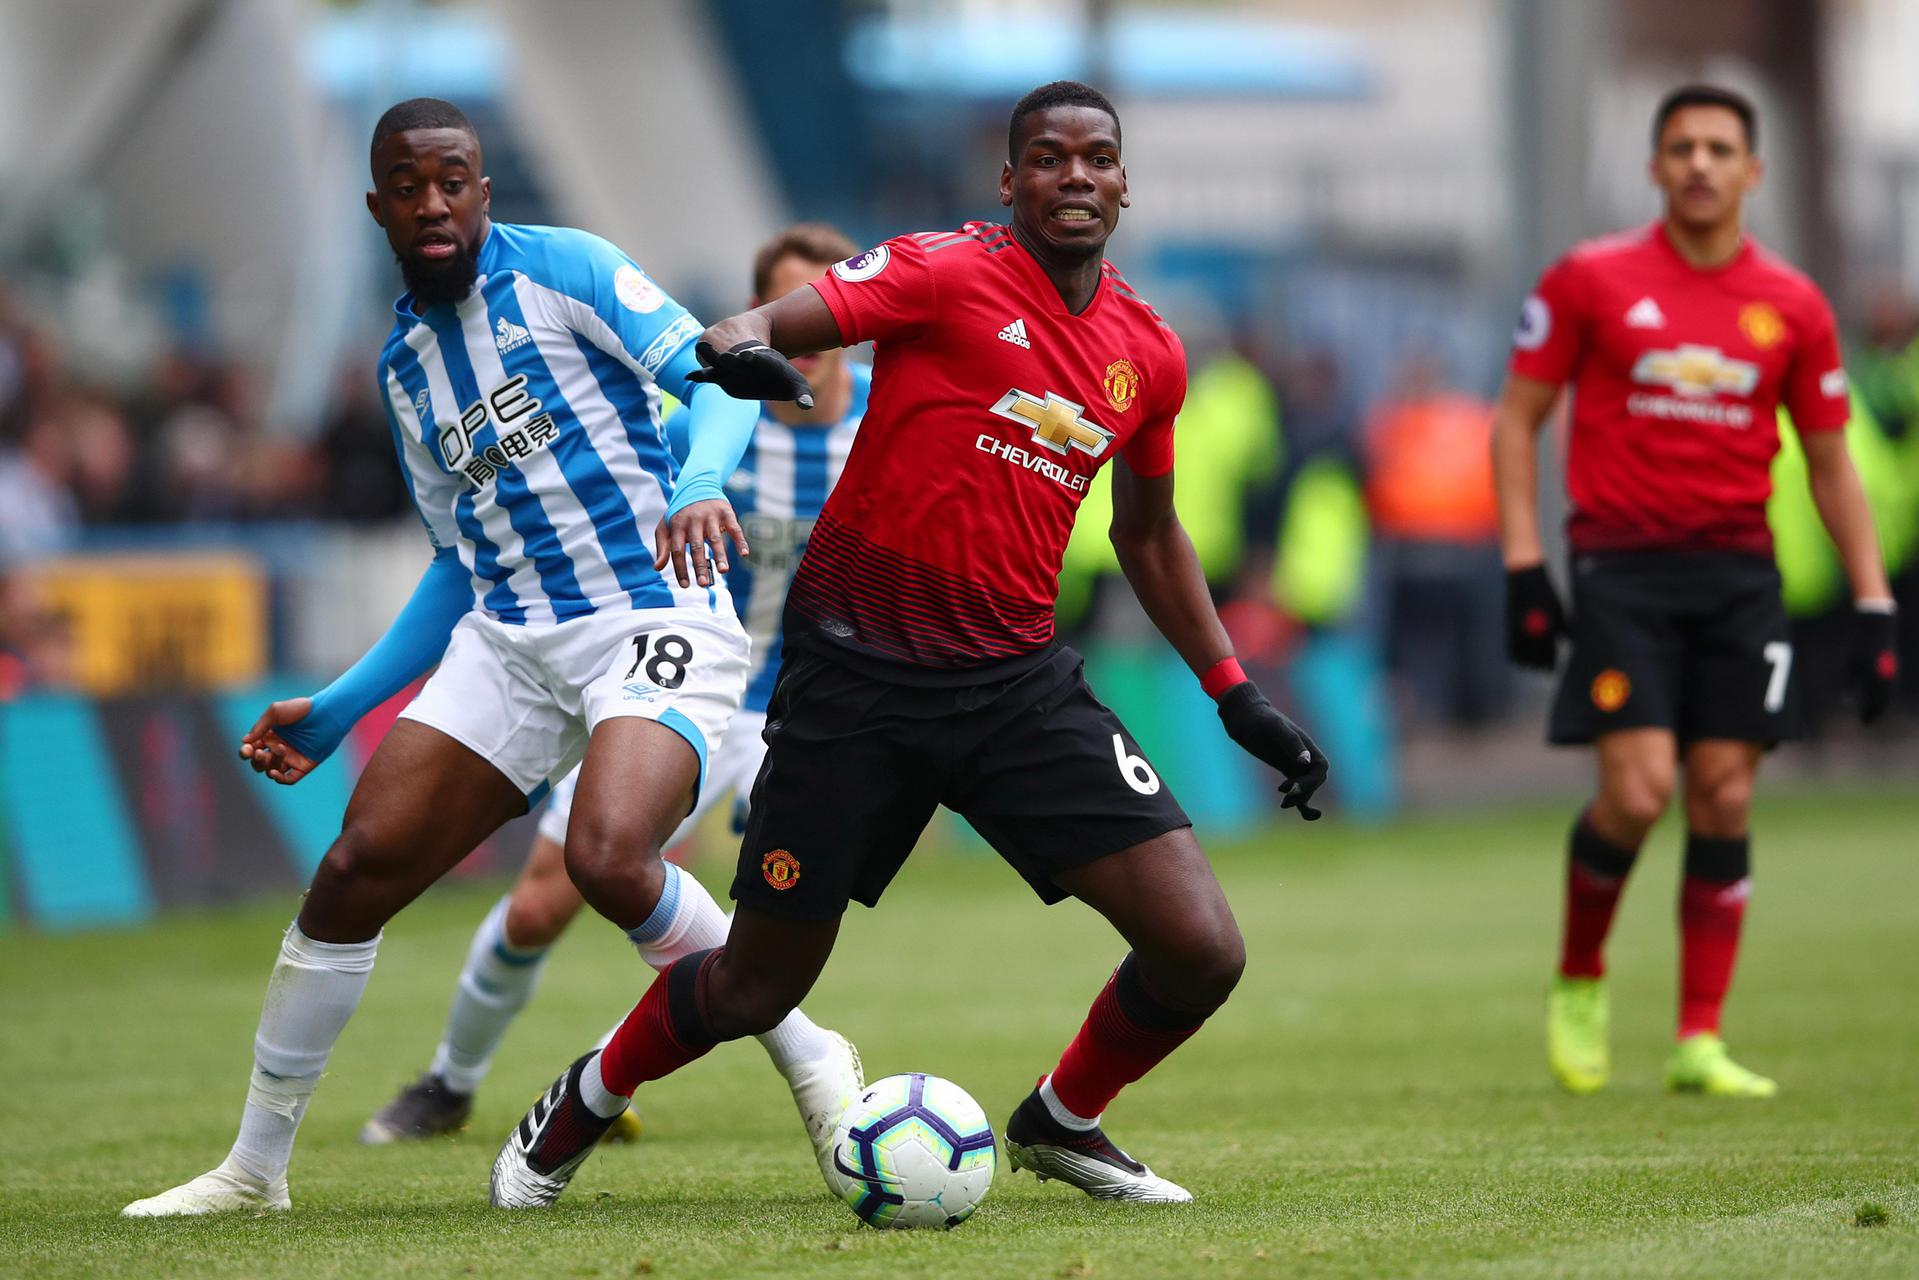 Paul Pogba battles with Huddersfield goalscorer Isaac Mbenza